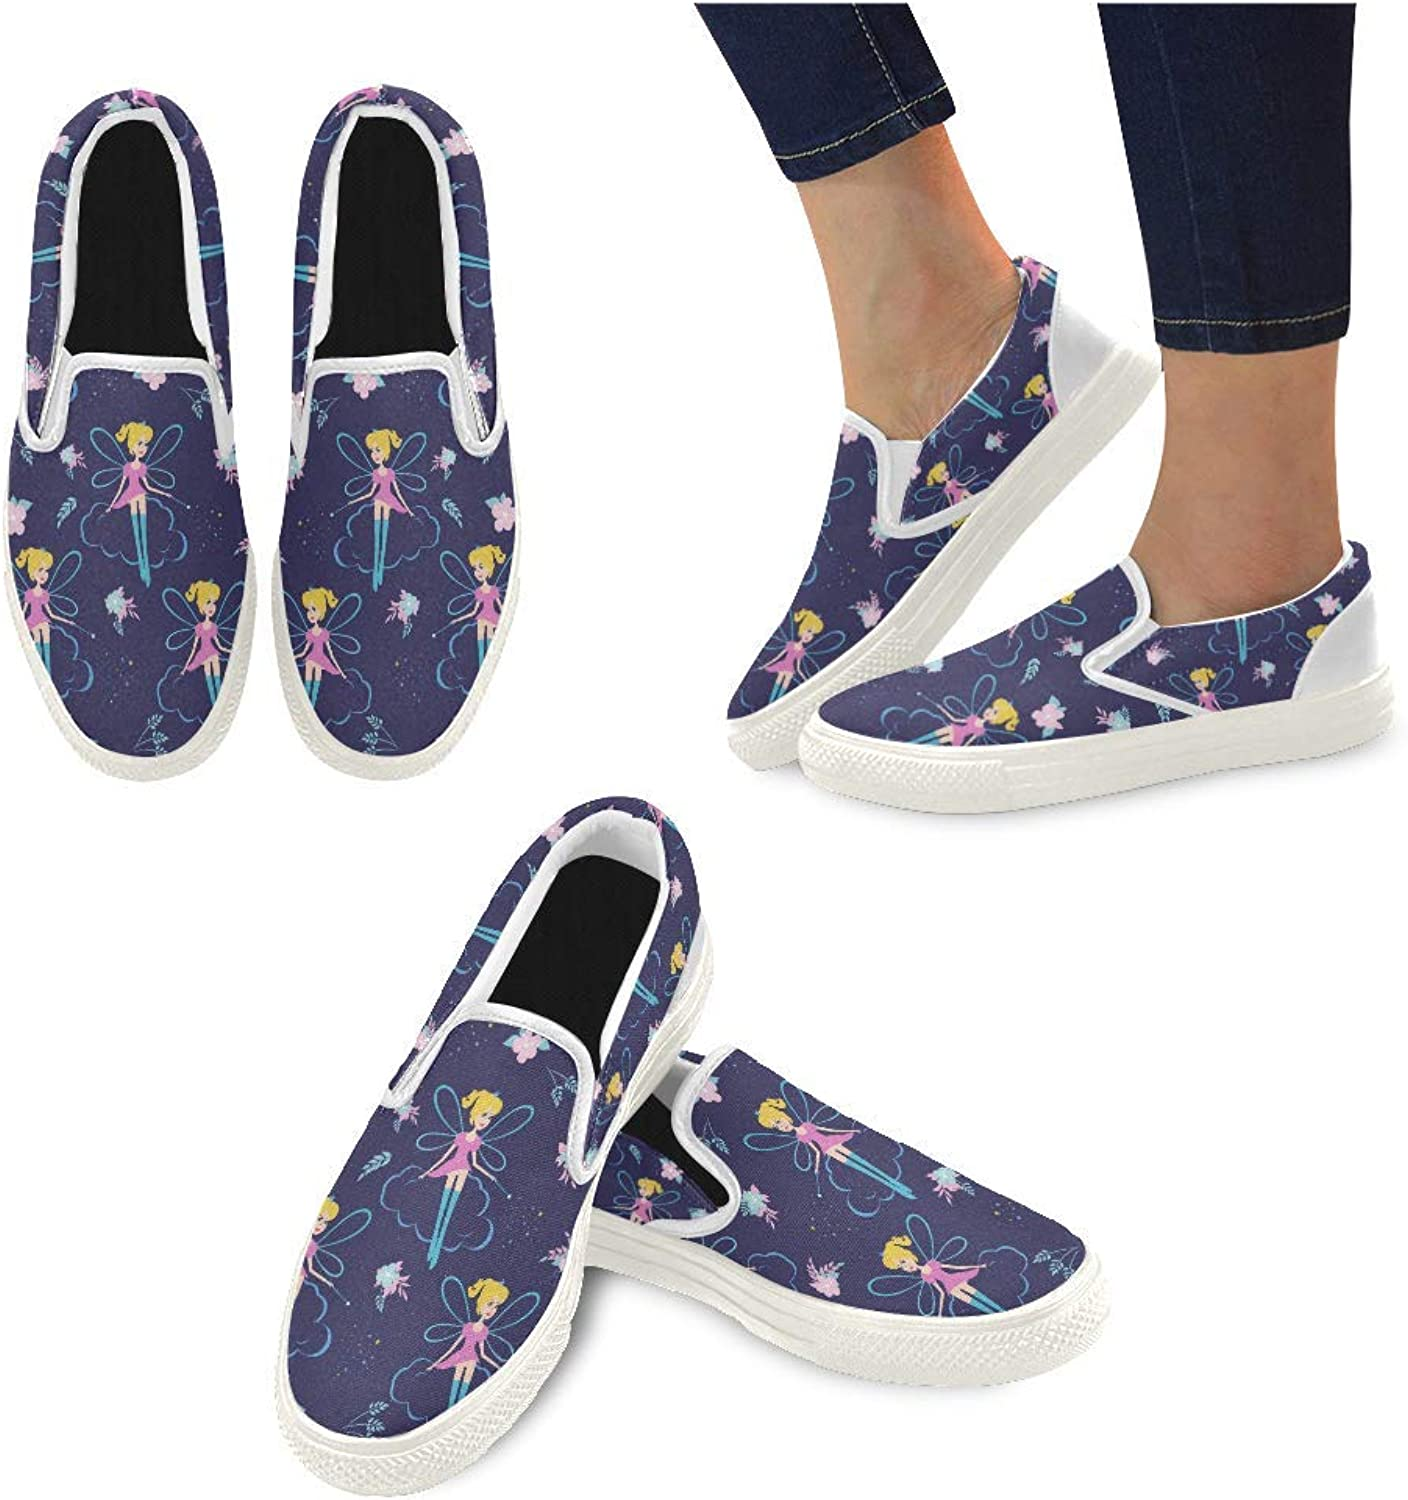 InterestPrint Women's Casual Canvas Slip-on Flat shoes Aircraft Comfortable Loafers Outdoor